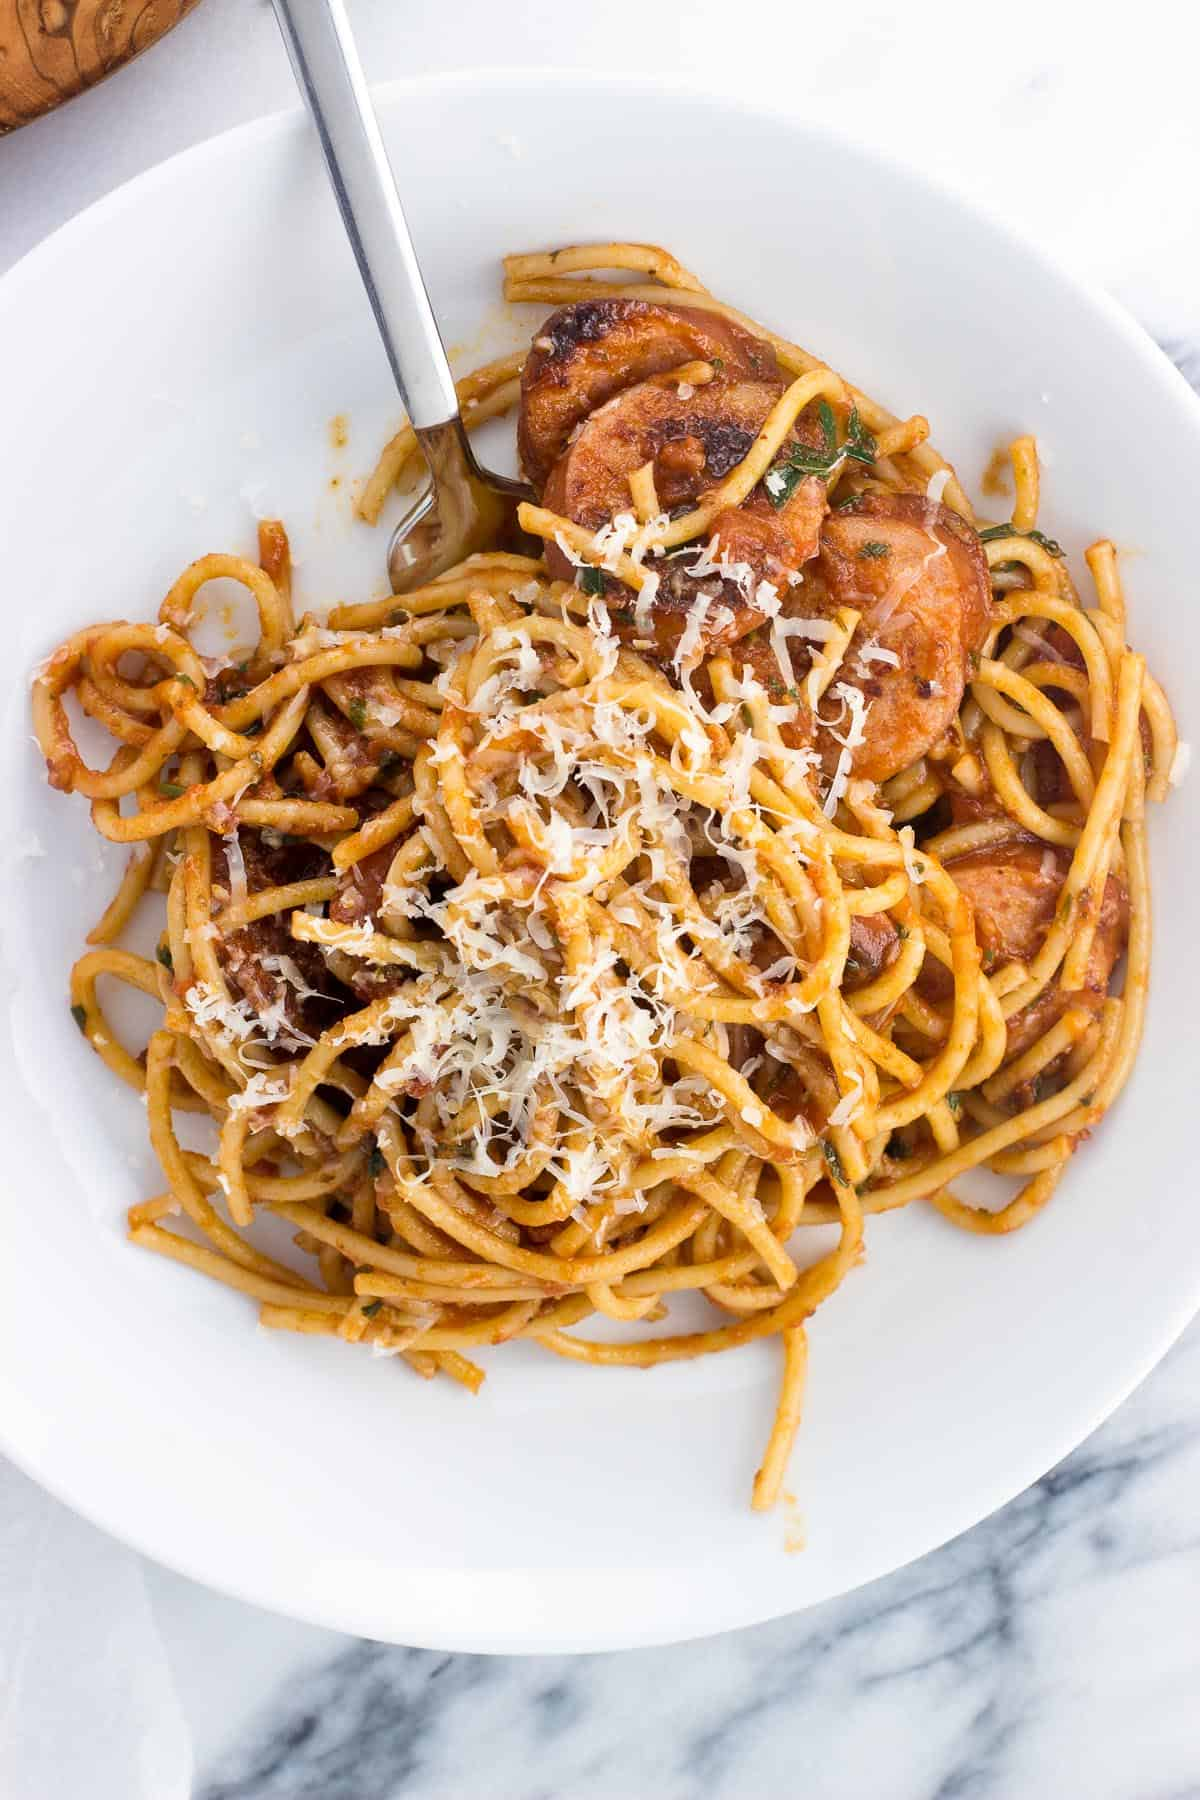 A ceramic pasta bowl of a portion of smoked sausage fra diavolo topped with grated Parmesan